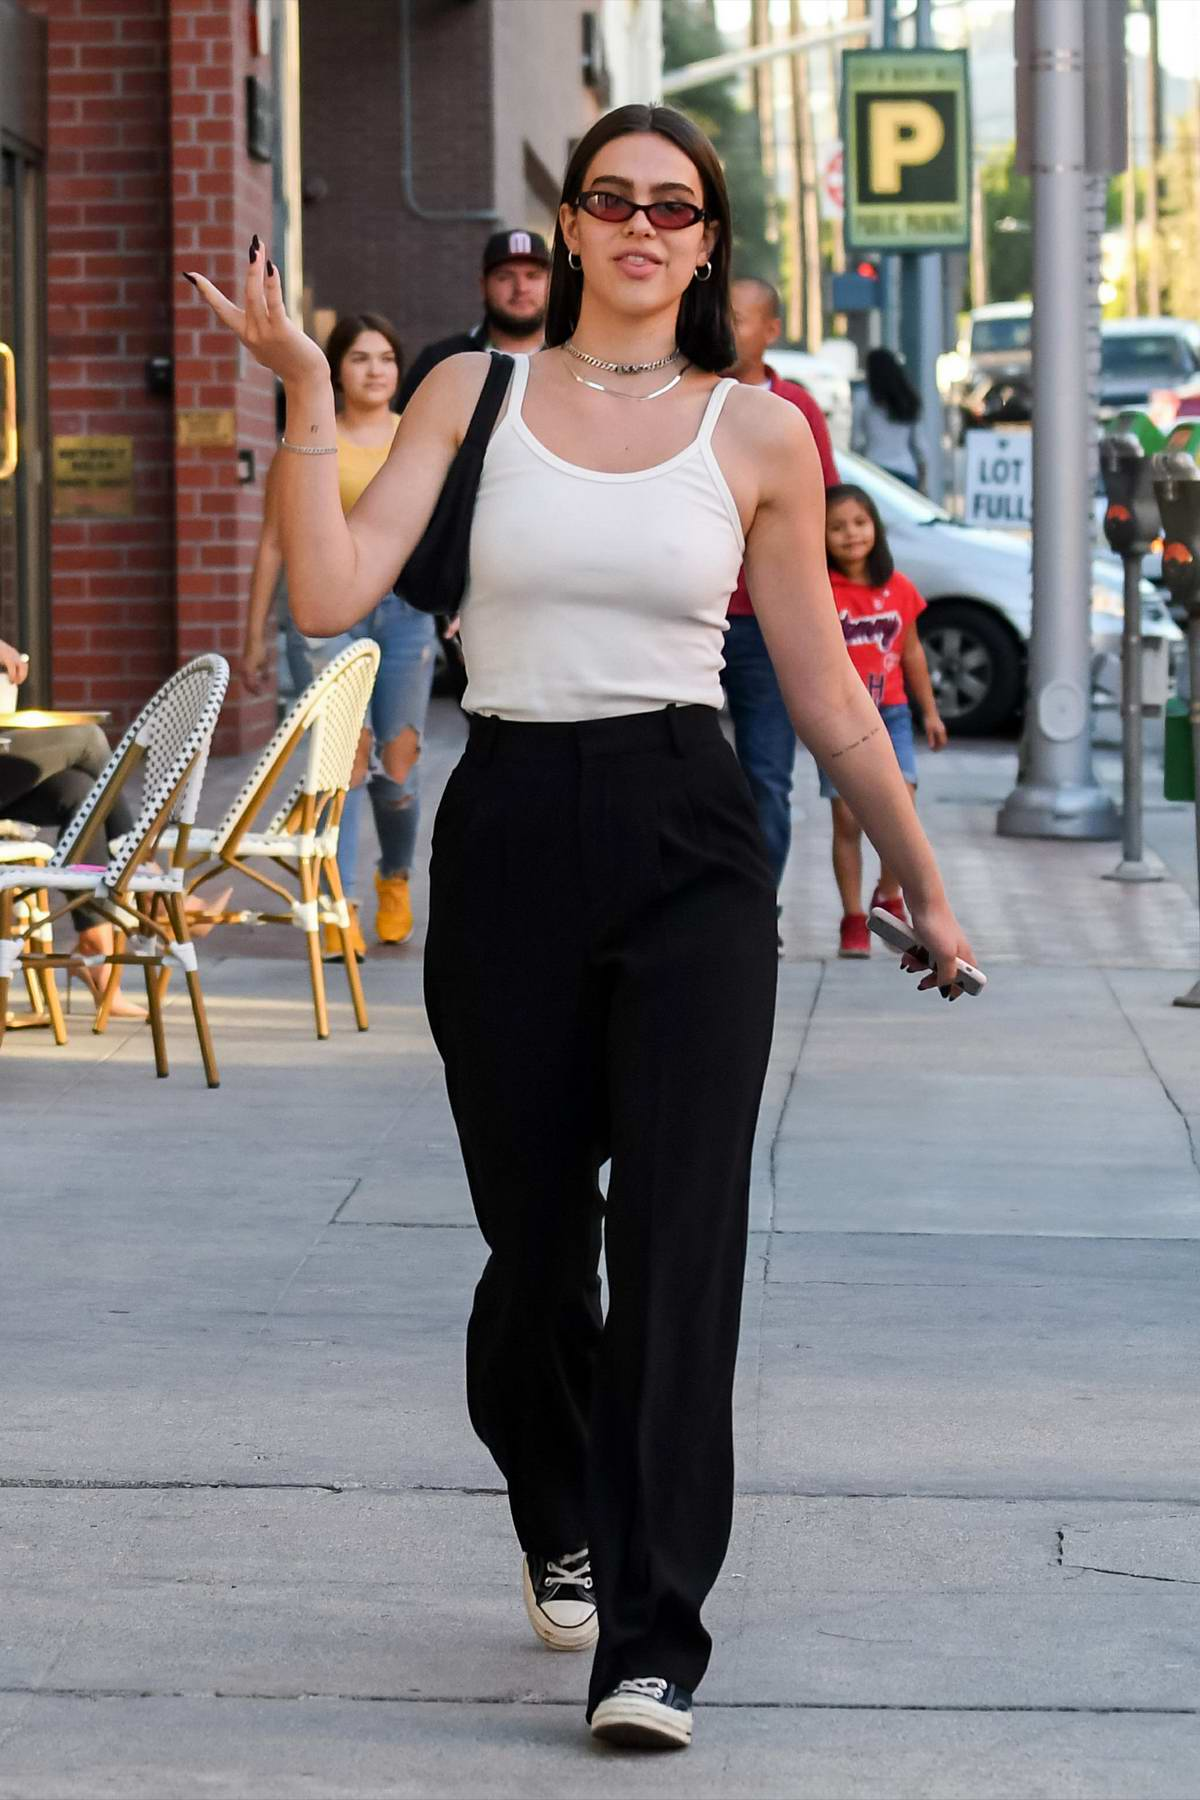 Amelia Hamlin spotted in a white camisole top and black trousers while visiting a nail salon in Los Angeles